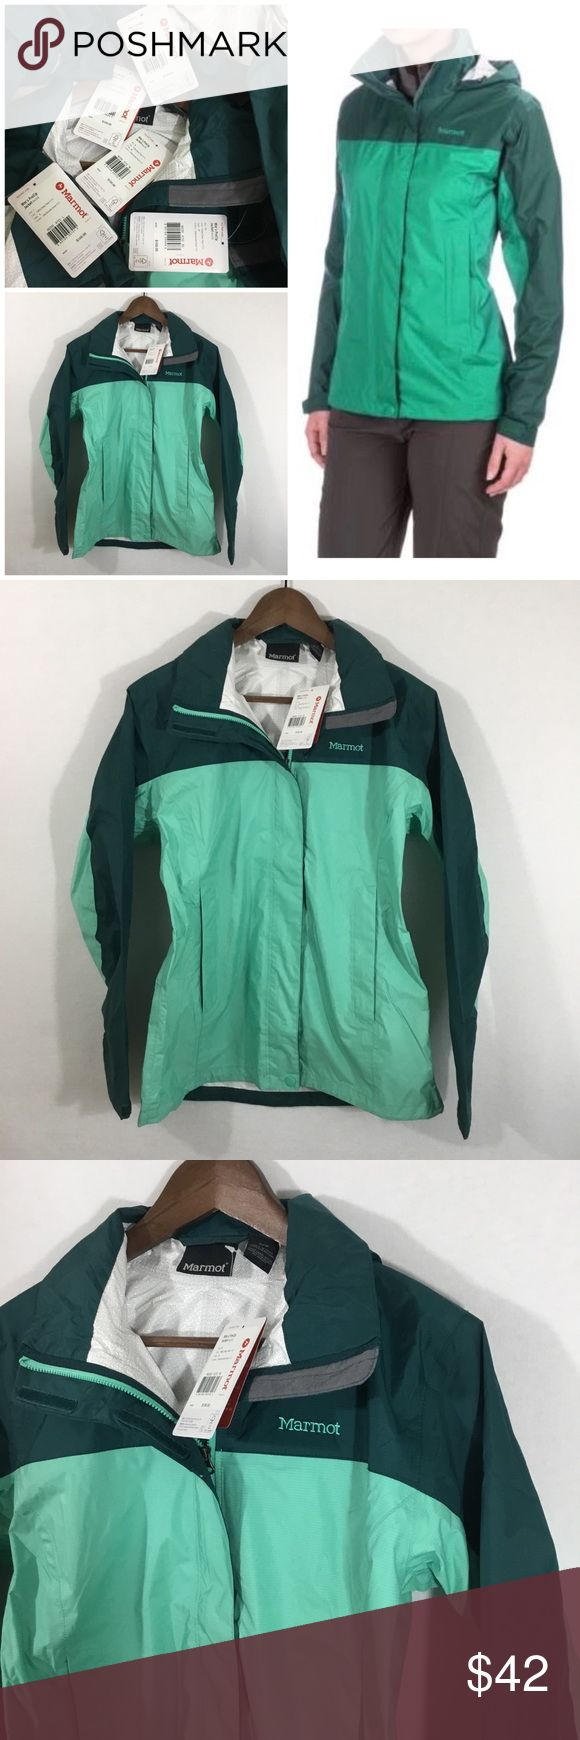 Marmot PreCip waterproof Jacket. XS/S/M/L/XL Marmot PreCip waterproof Jacket.  XS/S/M/L/XL. Color: Celtic/Deep Teal. Features: lightweight, waterproof, breathable, brimmed hood, Front zip with touch fasten storm Flap, pitzips For ventilation, cut longer in back, mesh-lined zip hand pockets, & adjustable cuffs. Excellent, feminine, lightweight rain jacket. Perfect to pair with rain Boots! Marmot Jackets & Coats